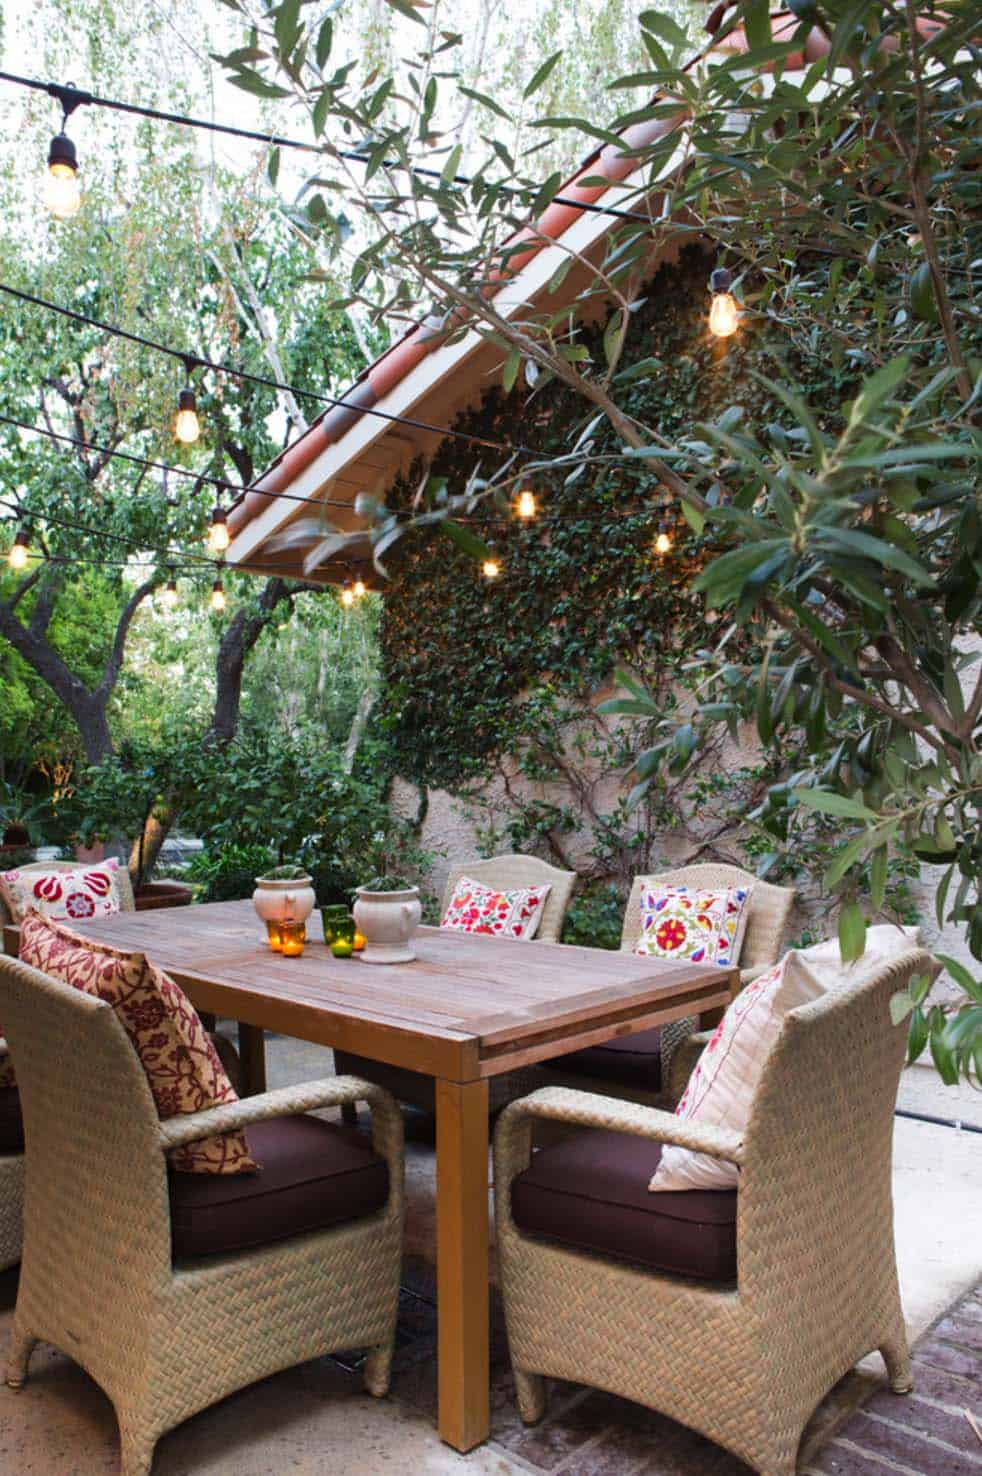 Inspiring String Light Ideas For Outdoors-24-1 Kindesign